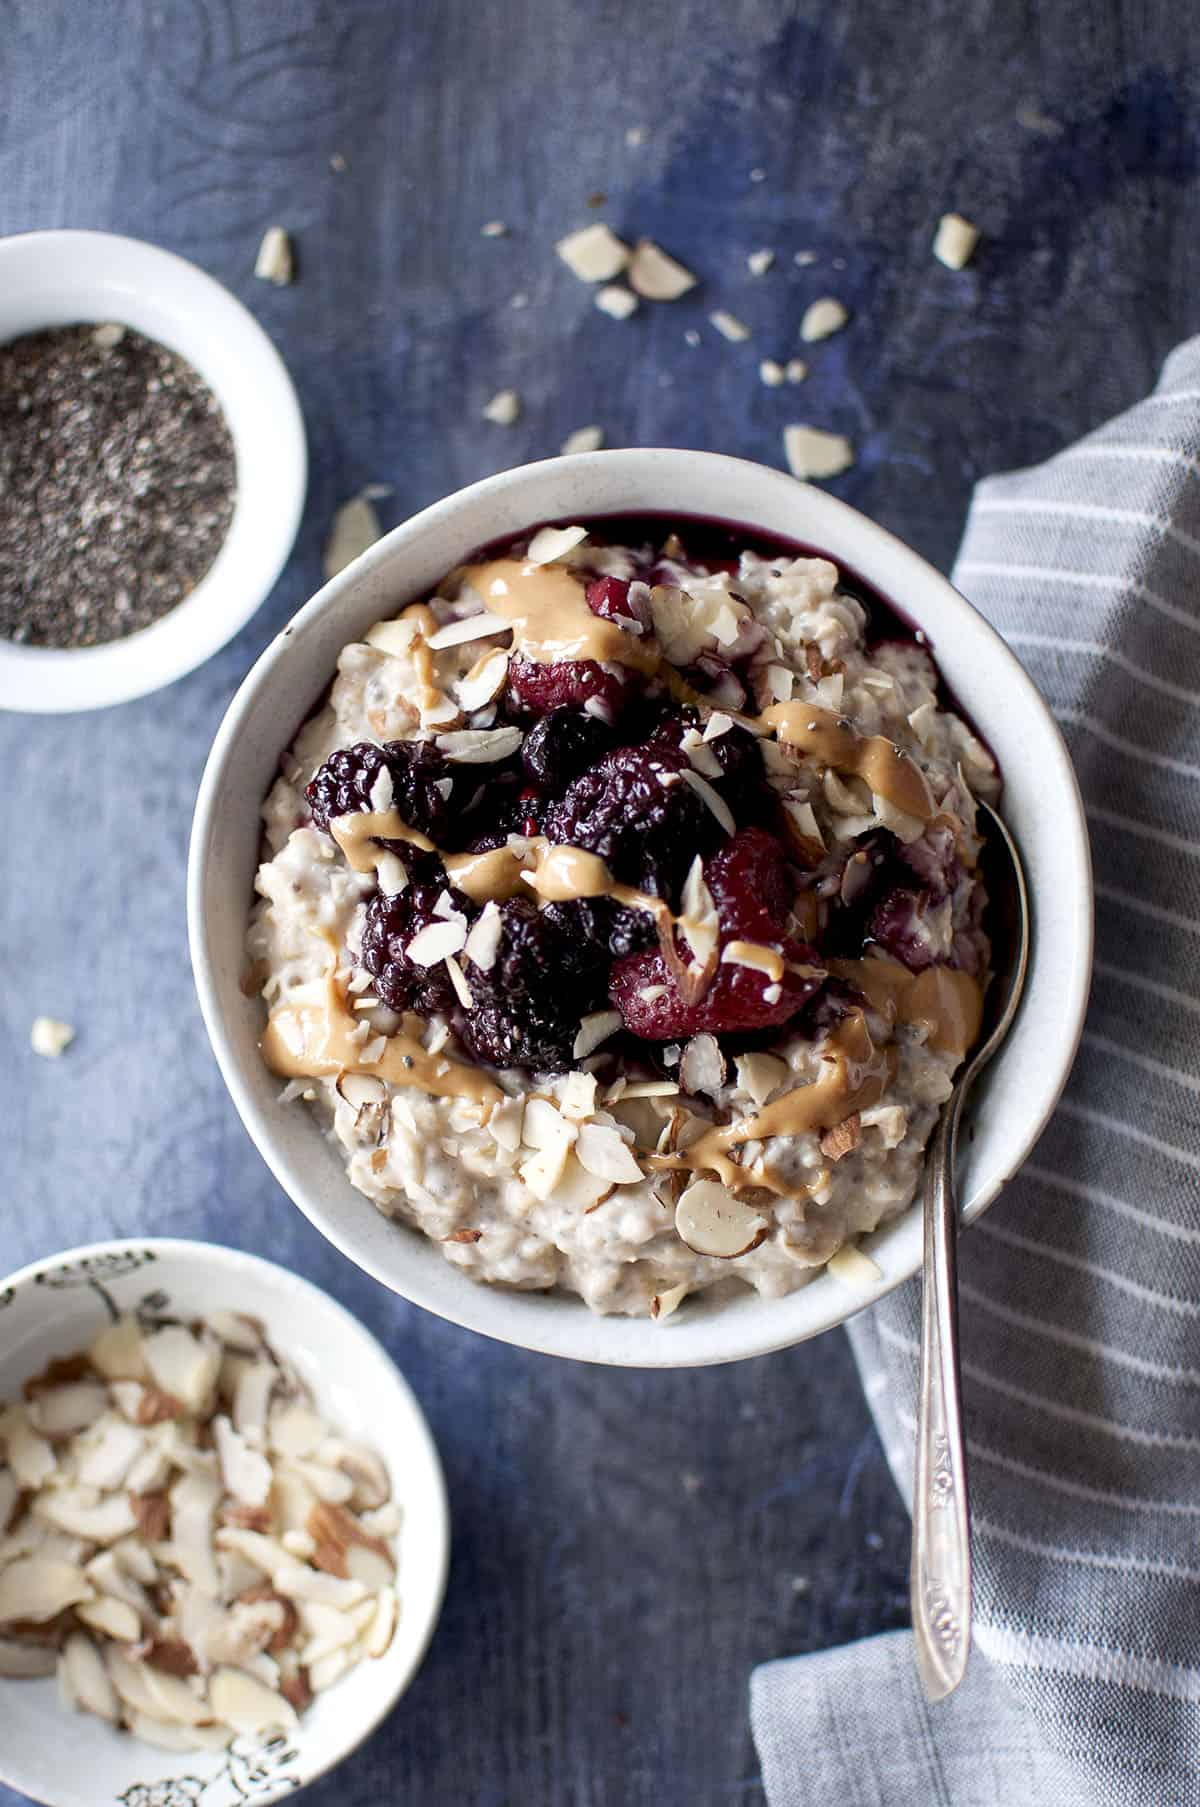 Grey bowl with oat and chia porridge topped with chopped nuts, berries and peanut butter